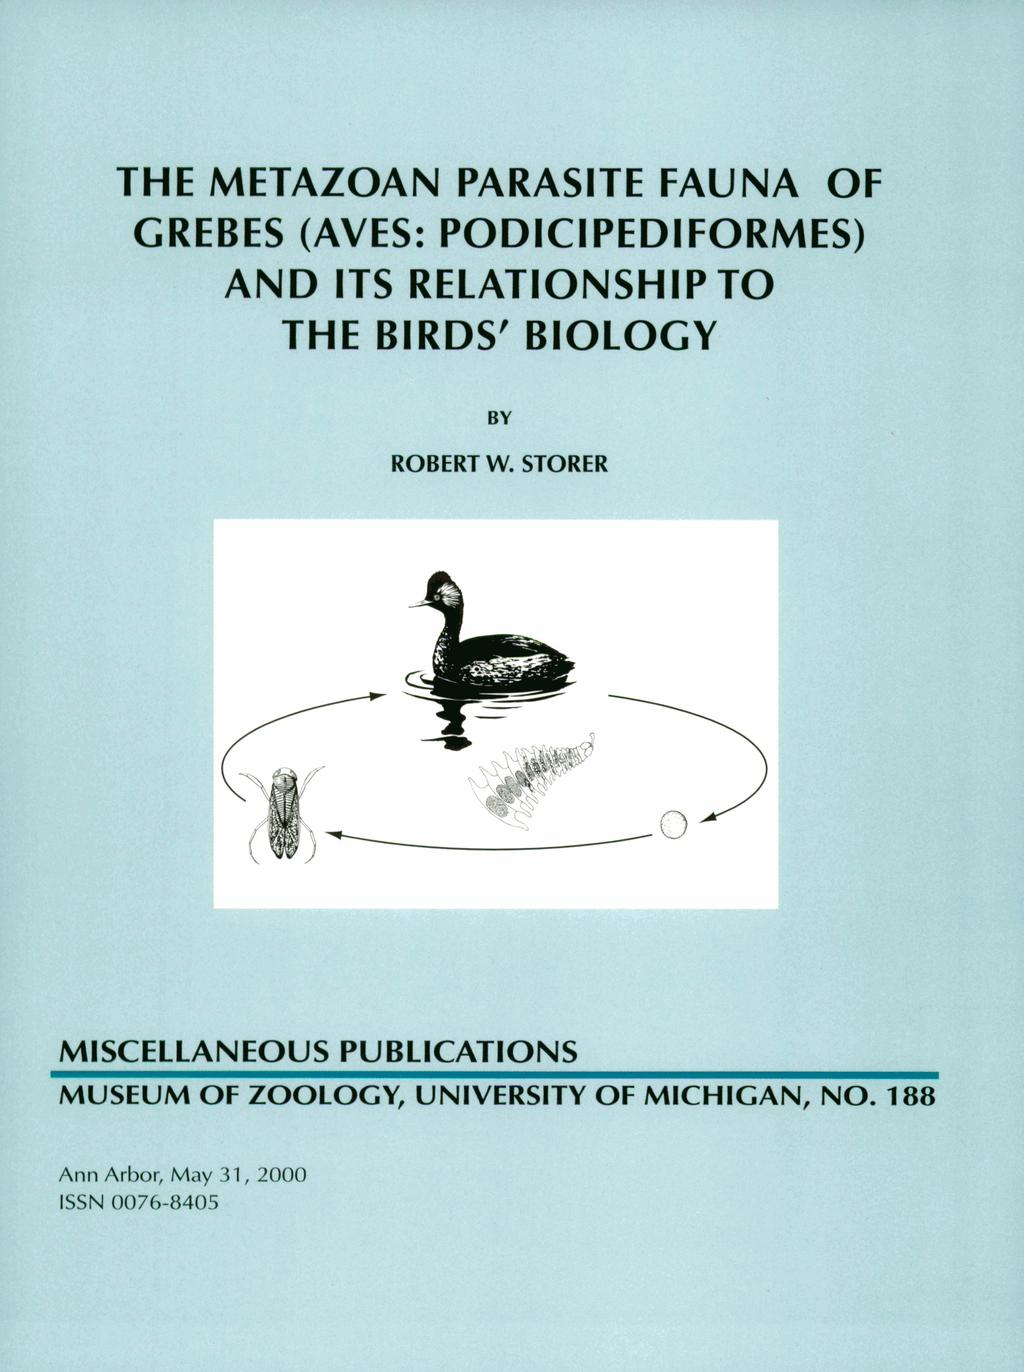 THE METAZOAN PARASITE FAUNA OF GREBES (AVES: PODICIPEDIFORMES) AND ITS RELATIONSHIP TO THE BIRDS' BIOLOGY BY